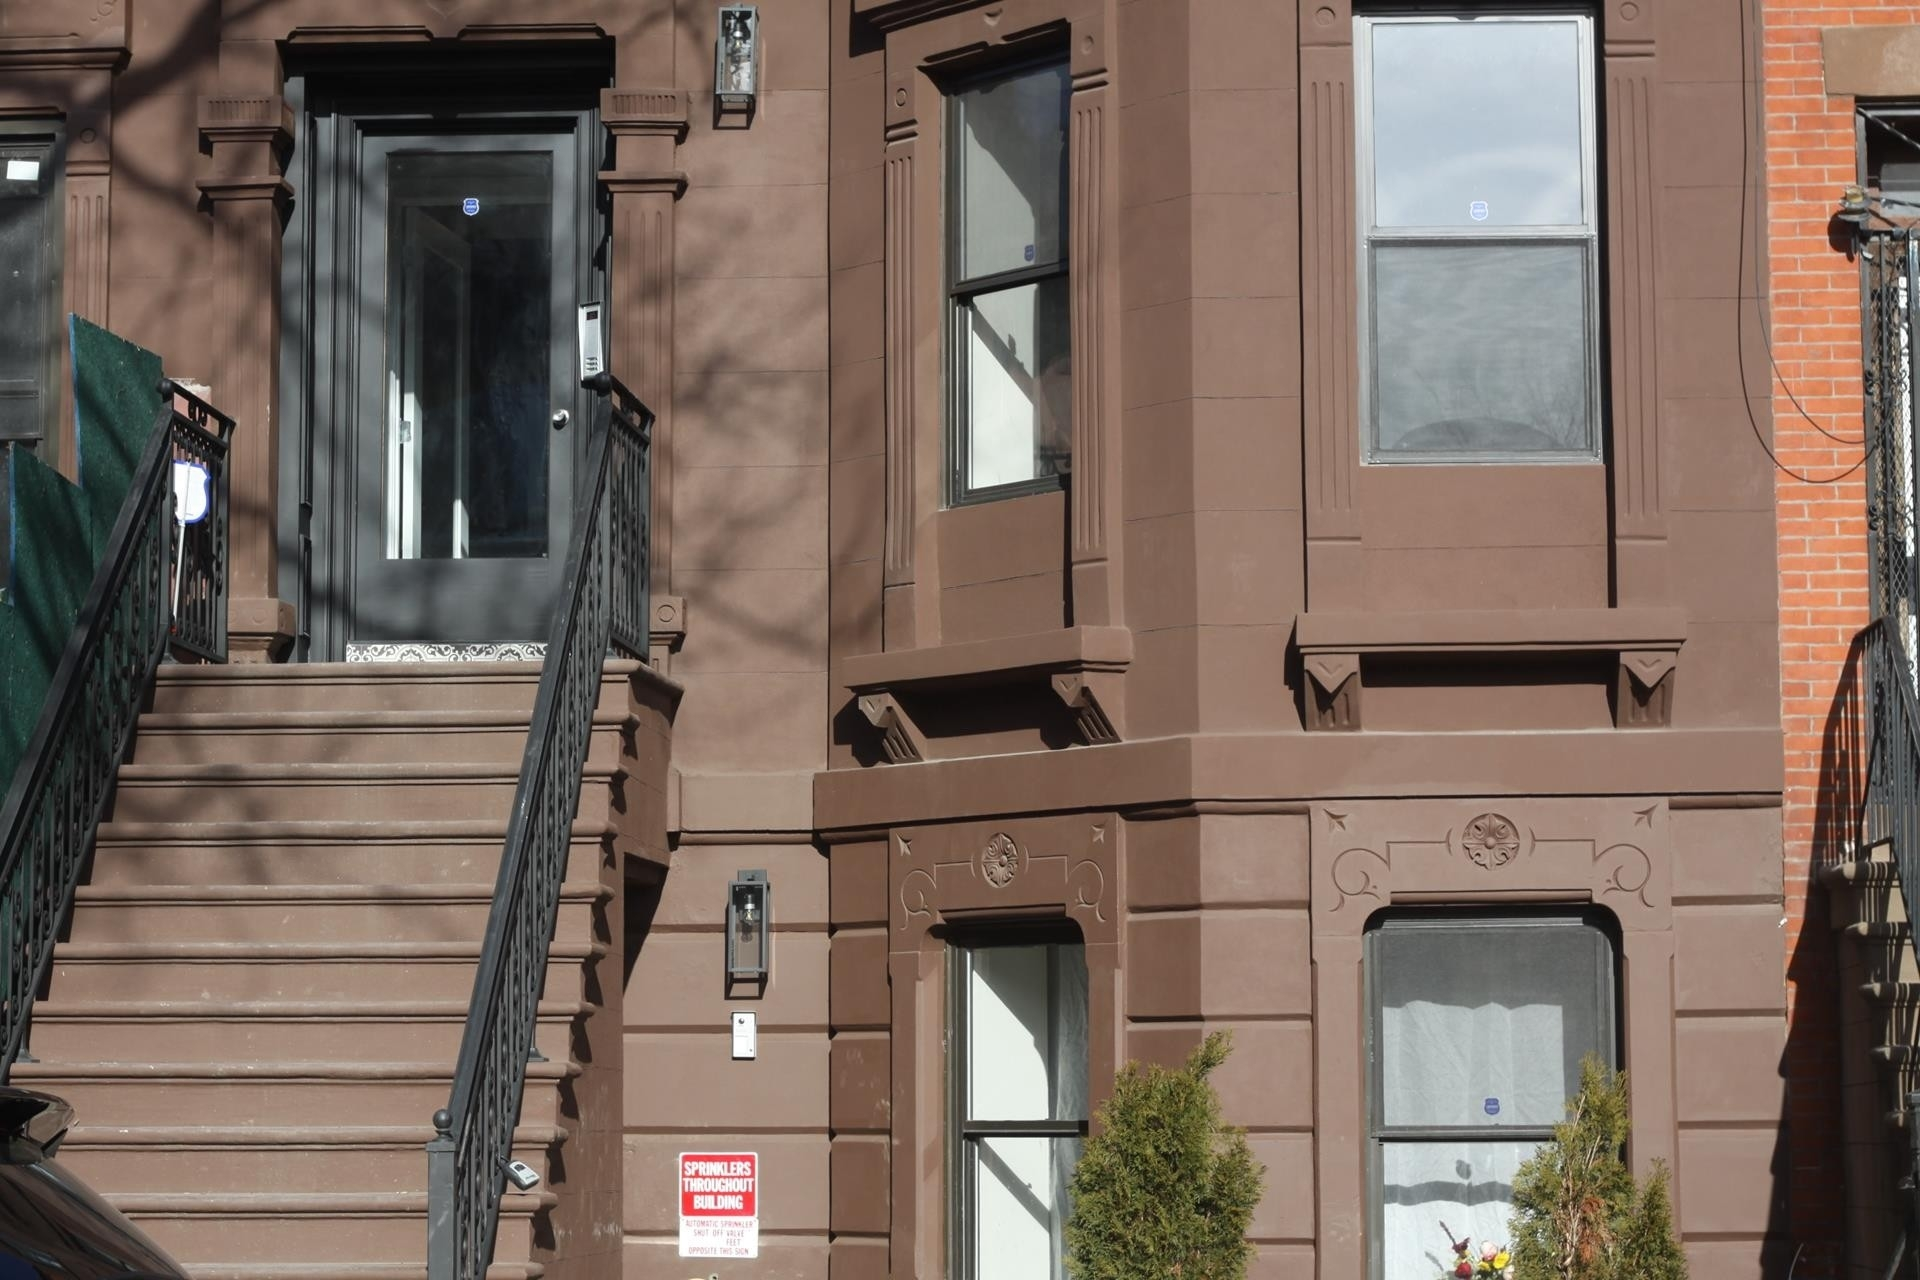 6. Condominiums for Sale at 695 Monroe St, 3 Bedford Stuyvesant, Brooklyn, NY 11221